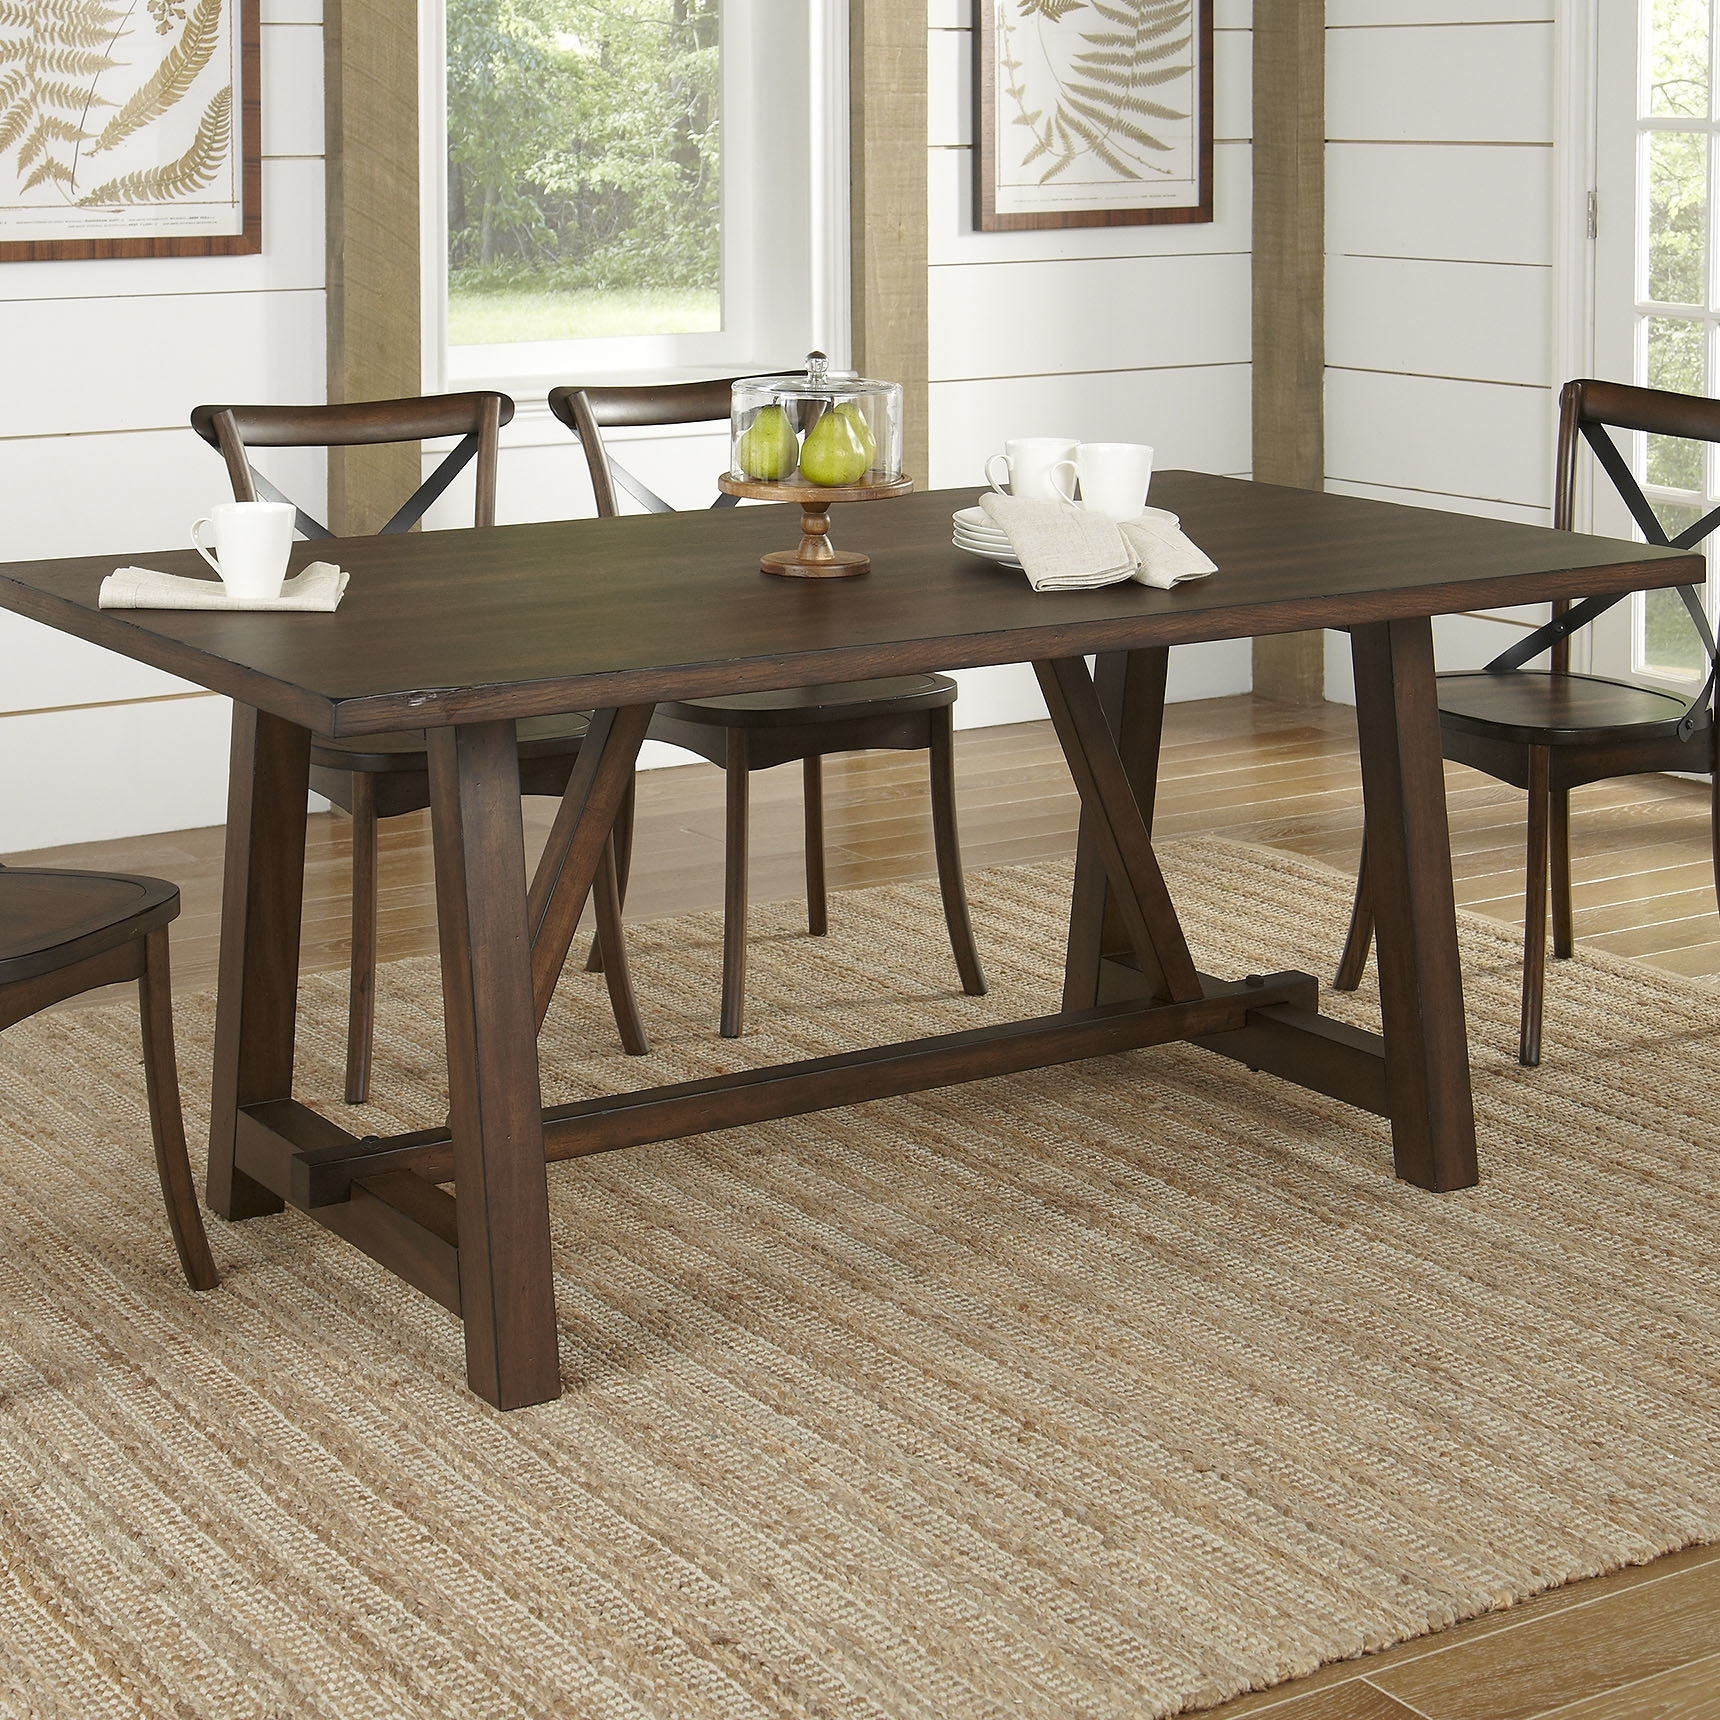 Wayfair Inside Laurent 7 Piece Rectangle Dining Sets With Wood And Host Chairs (View 24 of 25)